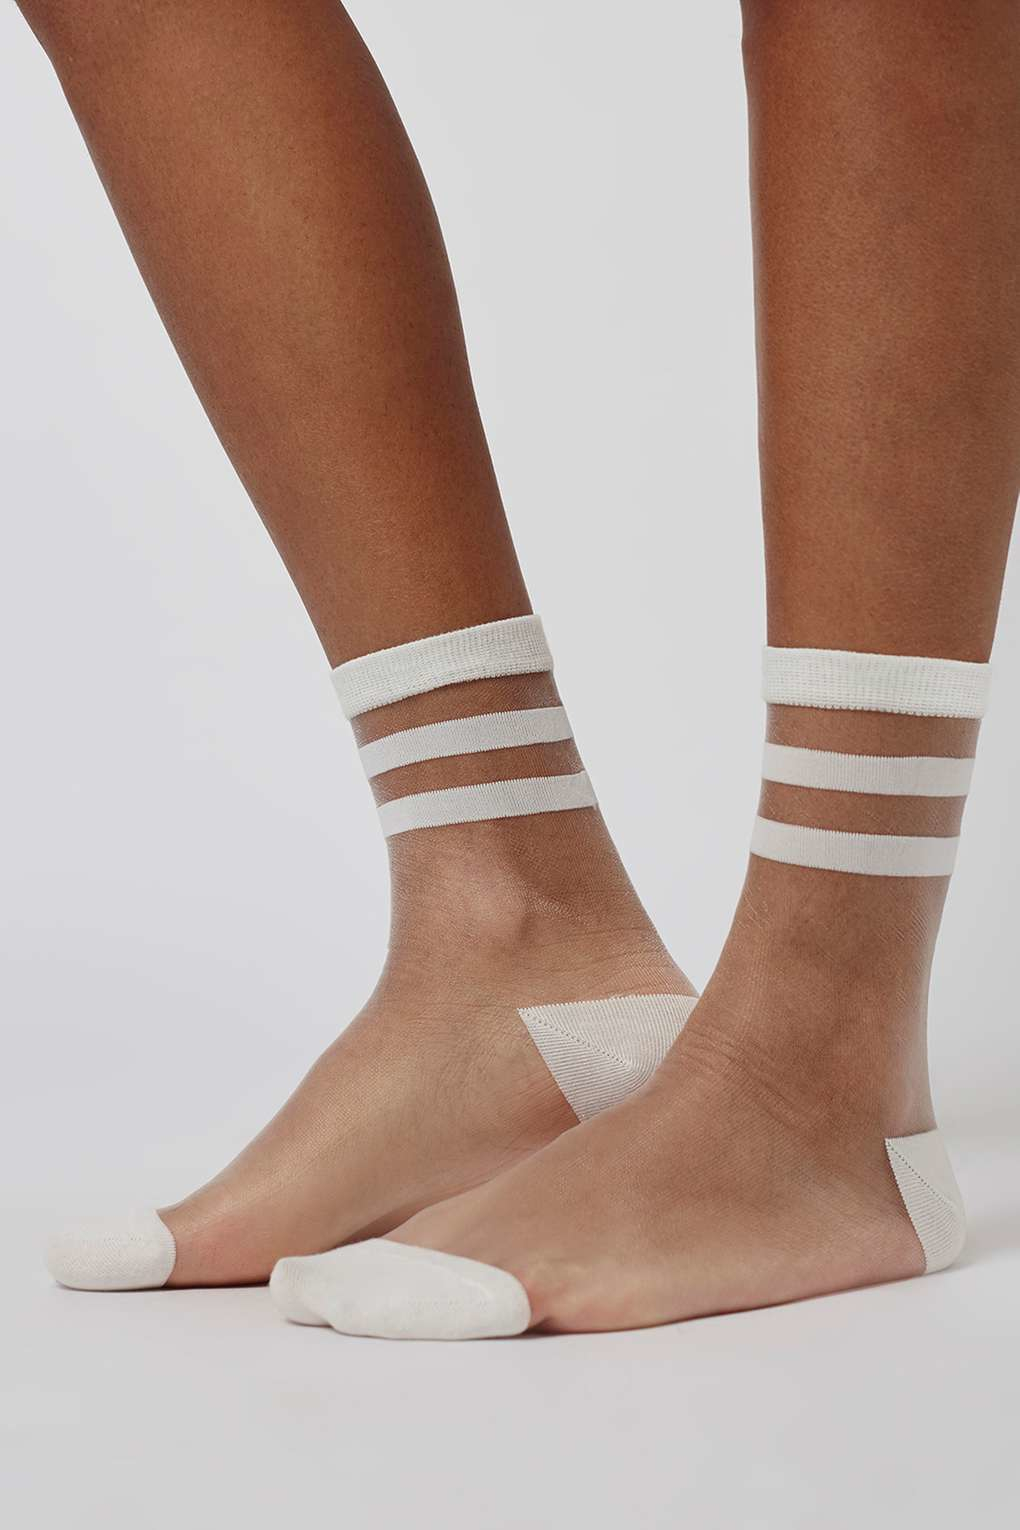 Sheer white, knee high nylon stockings. HEY BABES! SIGNUP TO OUR EXCLUSIVE E-MAIL LIST AND GET 10% OFF YOUR FIRST ORDER.